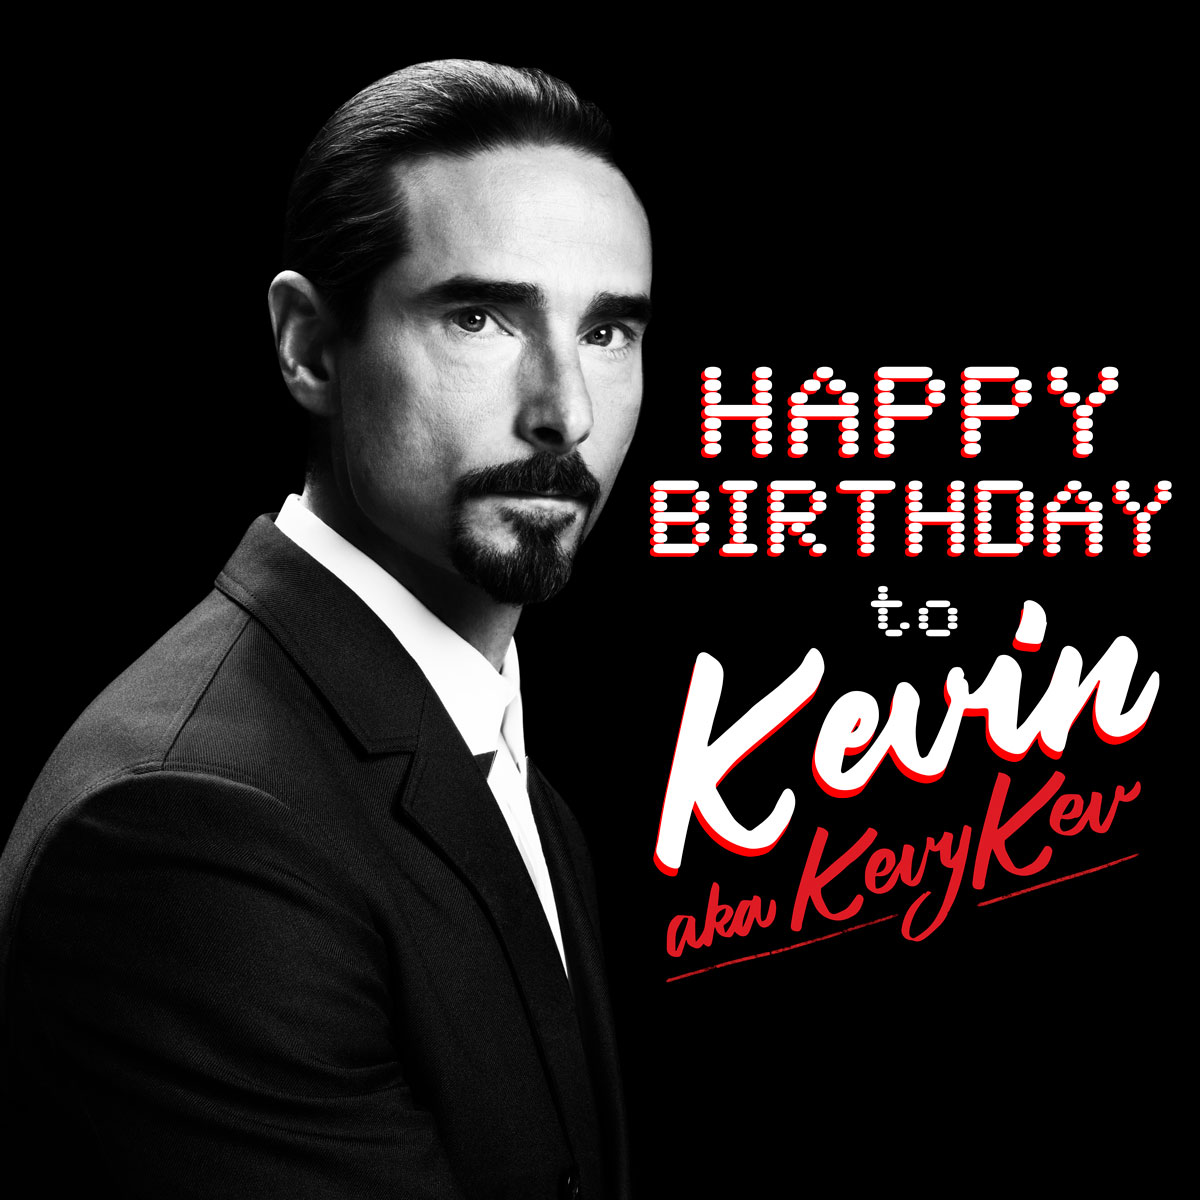 HAPPY BIRTHDAY KEVIN!!